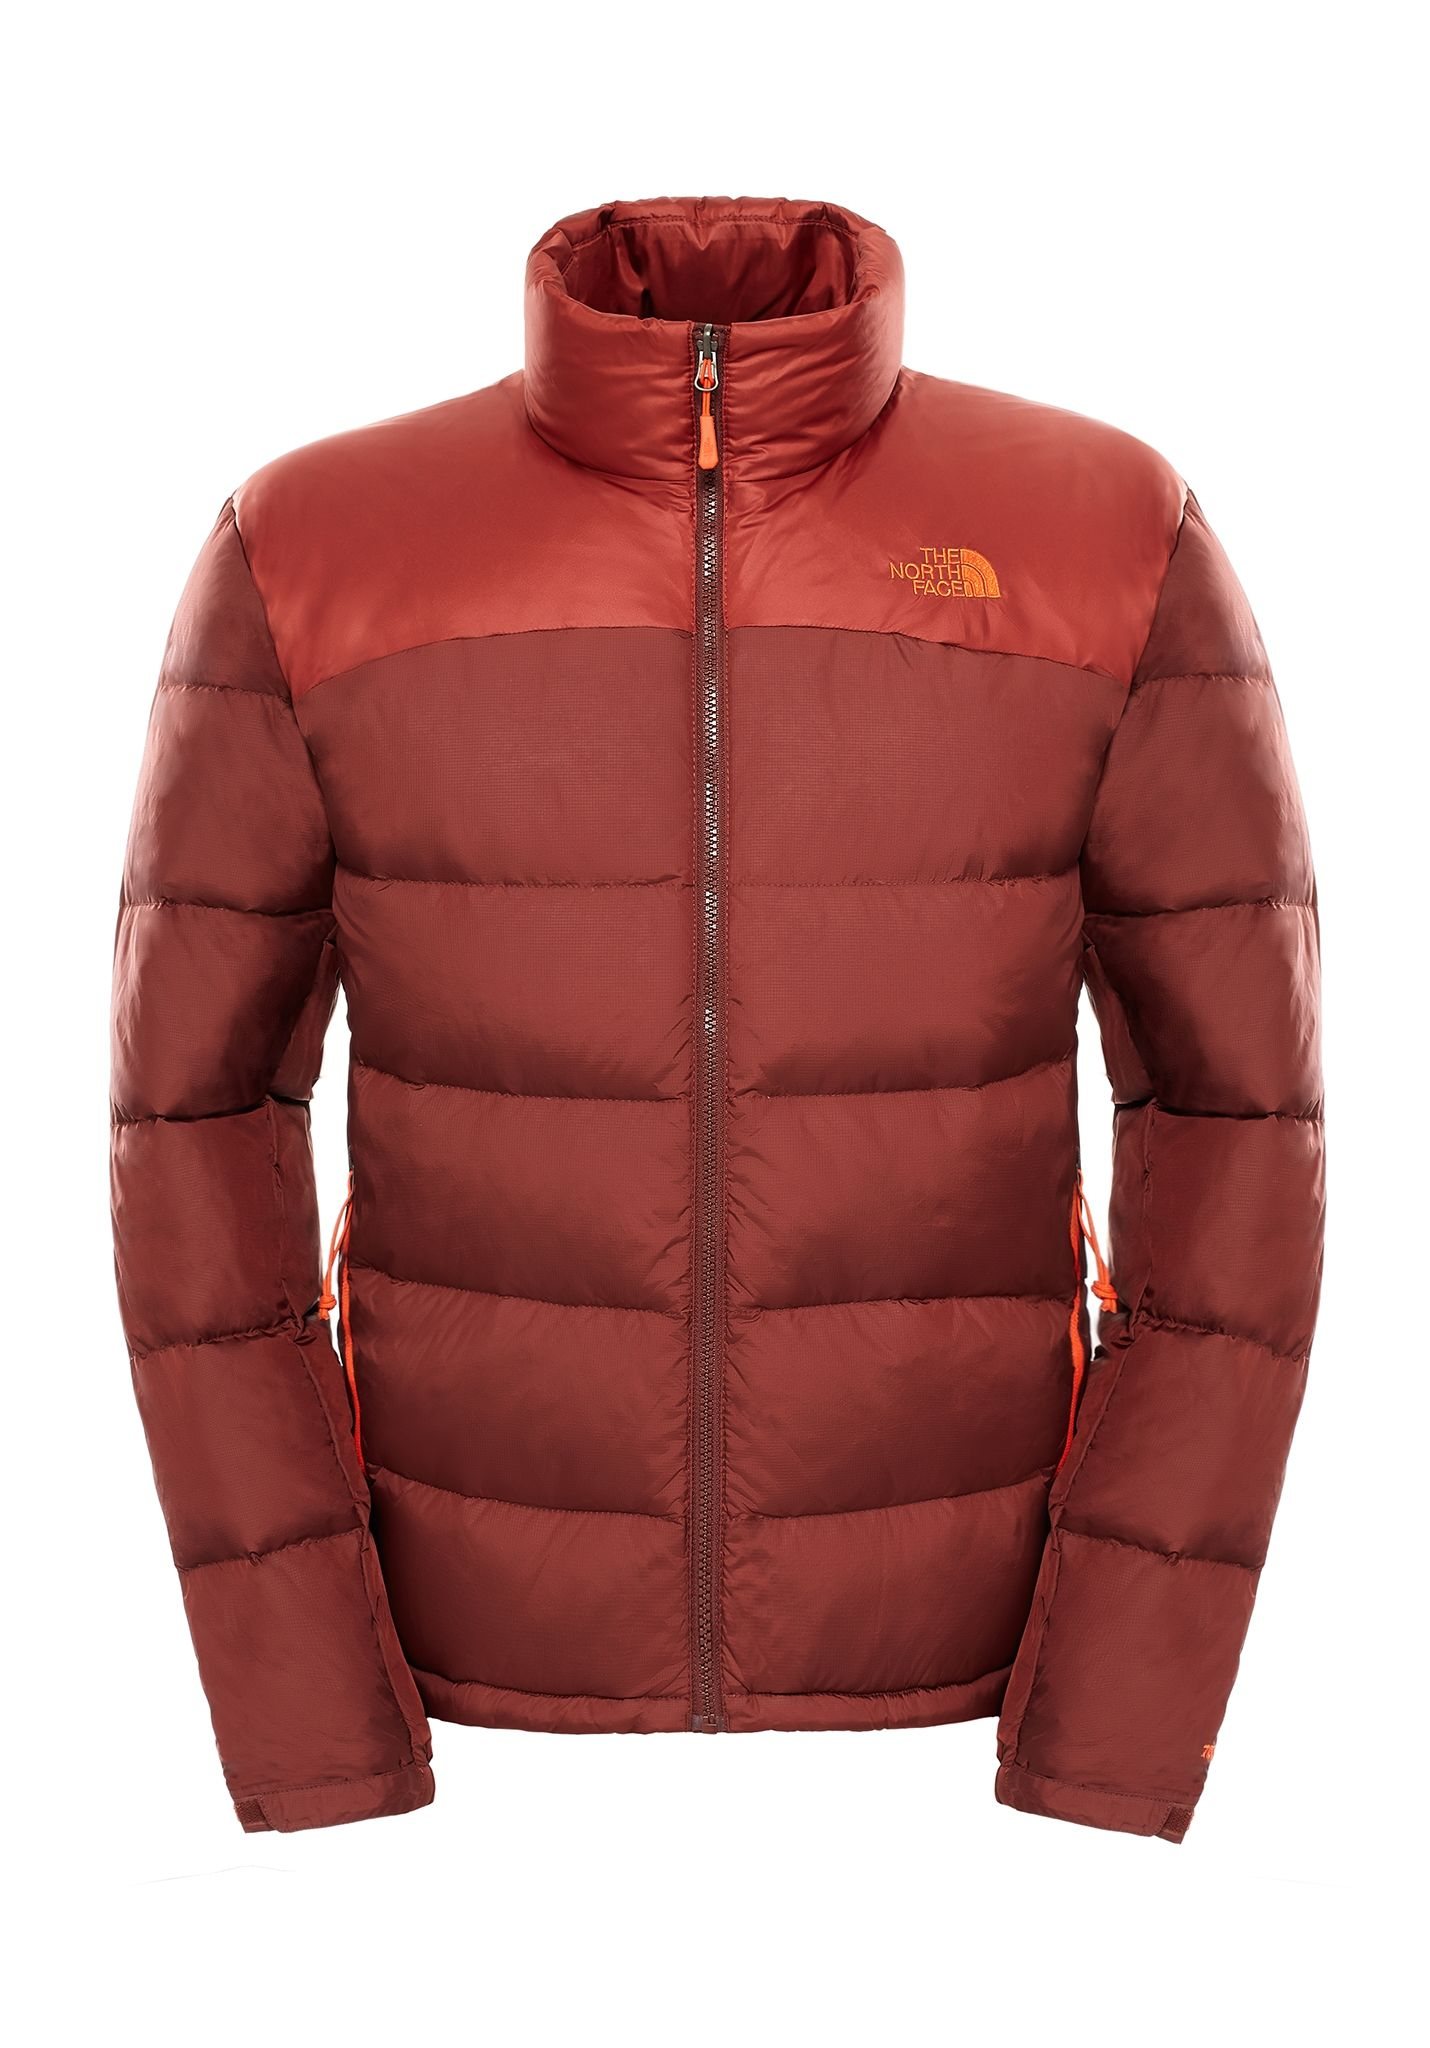 ... THE NORTH FACE Nuptse 2 - Functional Jacket for Men - Red - Planet  Sports ... 7cdd5d64d